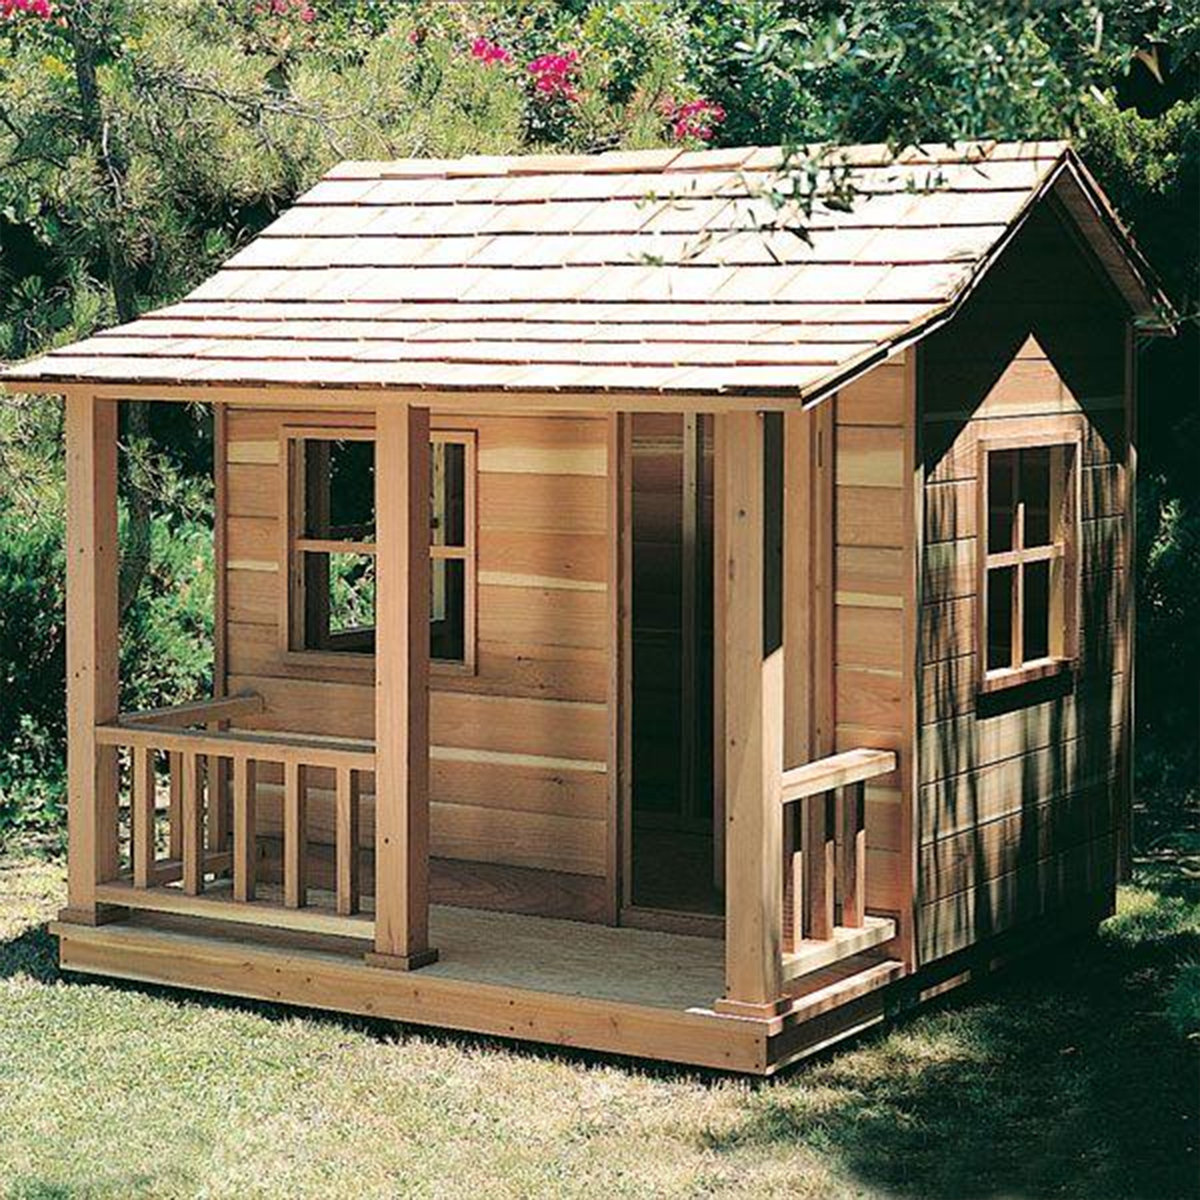 U Bild - Woodworking Project Paper Plan to Build Playhouse Fort Playhouse Plans Easy on fort floor plans, easy fort plans, backyard fort plans, outdoor fort plans, elevated fort plans, play fort plans, tree fort plans, wood fort plans, fort ideas, 2 story fort plans, fort designs, fort bed plans, playground fort plans, fort swing set plans,